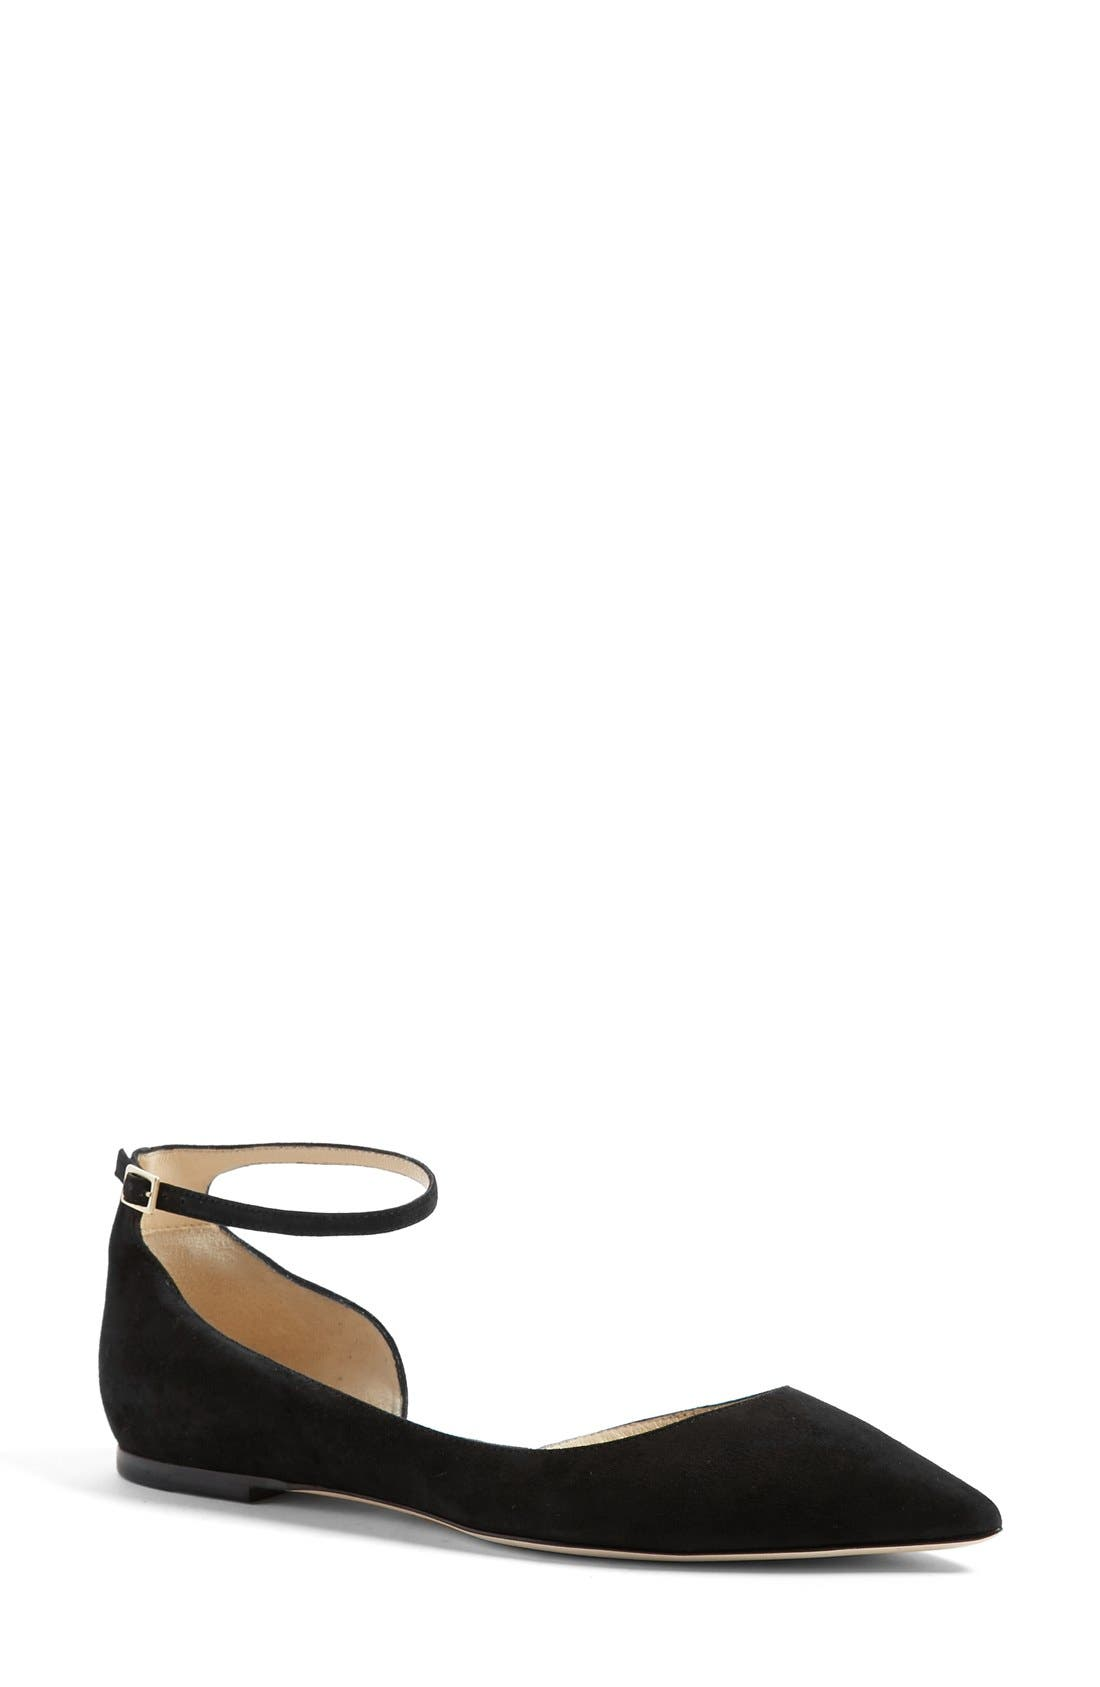 Alternate Image 1 Selected - Jimmy Choo 'Lucy' Half d'Orsay Flat (Women)